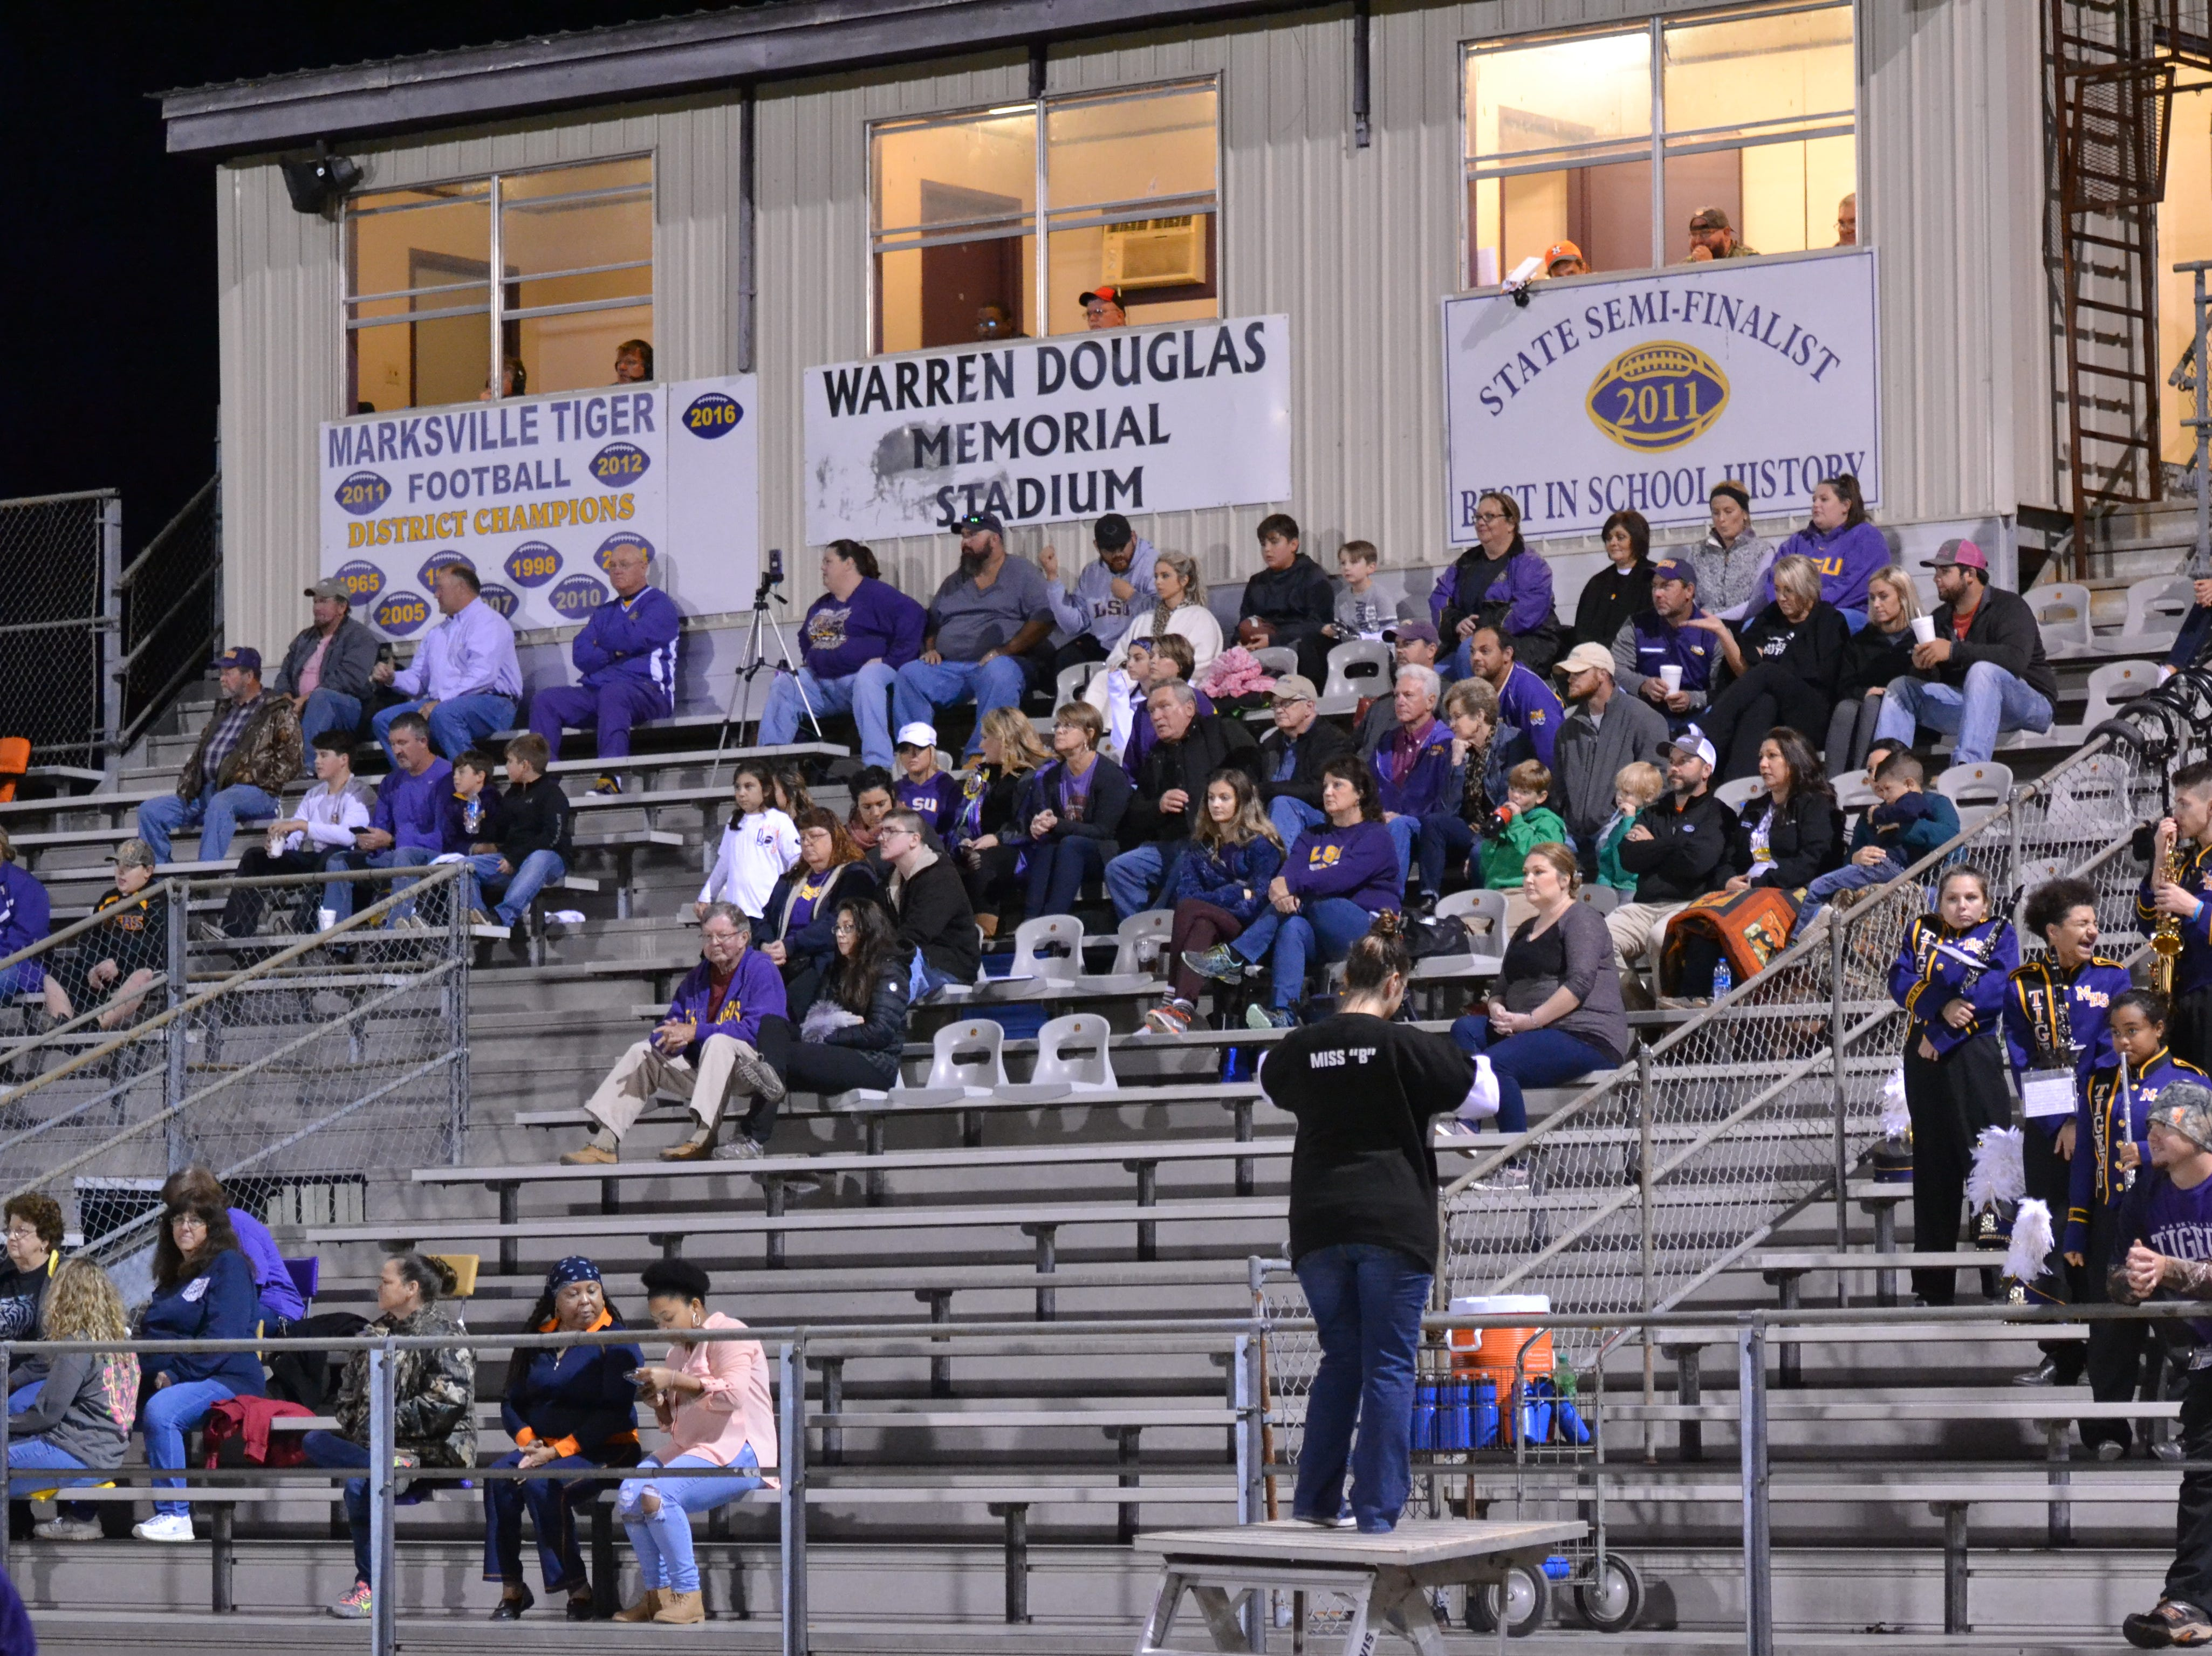 Marksville fans settle in an a cool night in Marksville. Marksville and Caldwell met in the regular season finale Friday night with Caldwell edging Marksville 13-8.